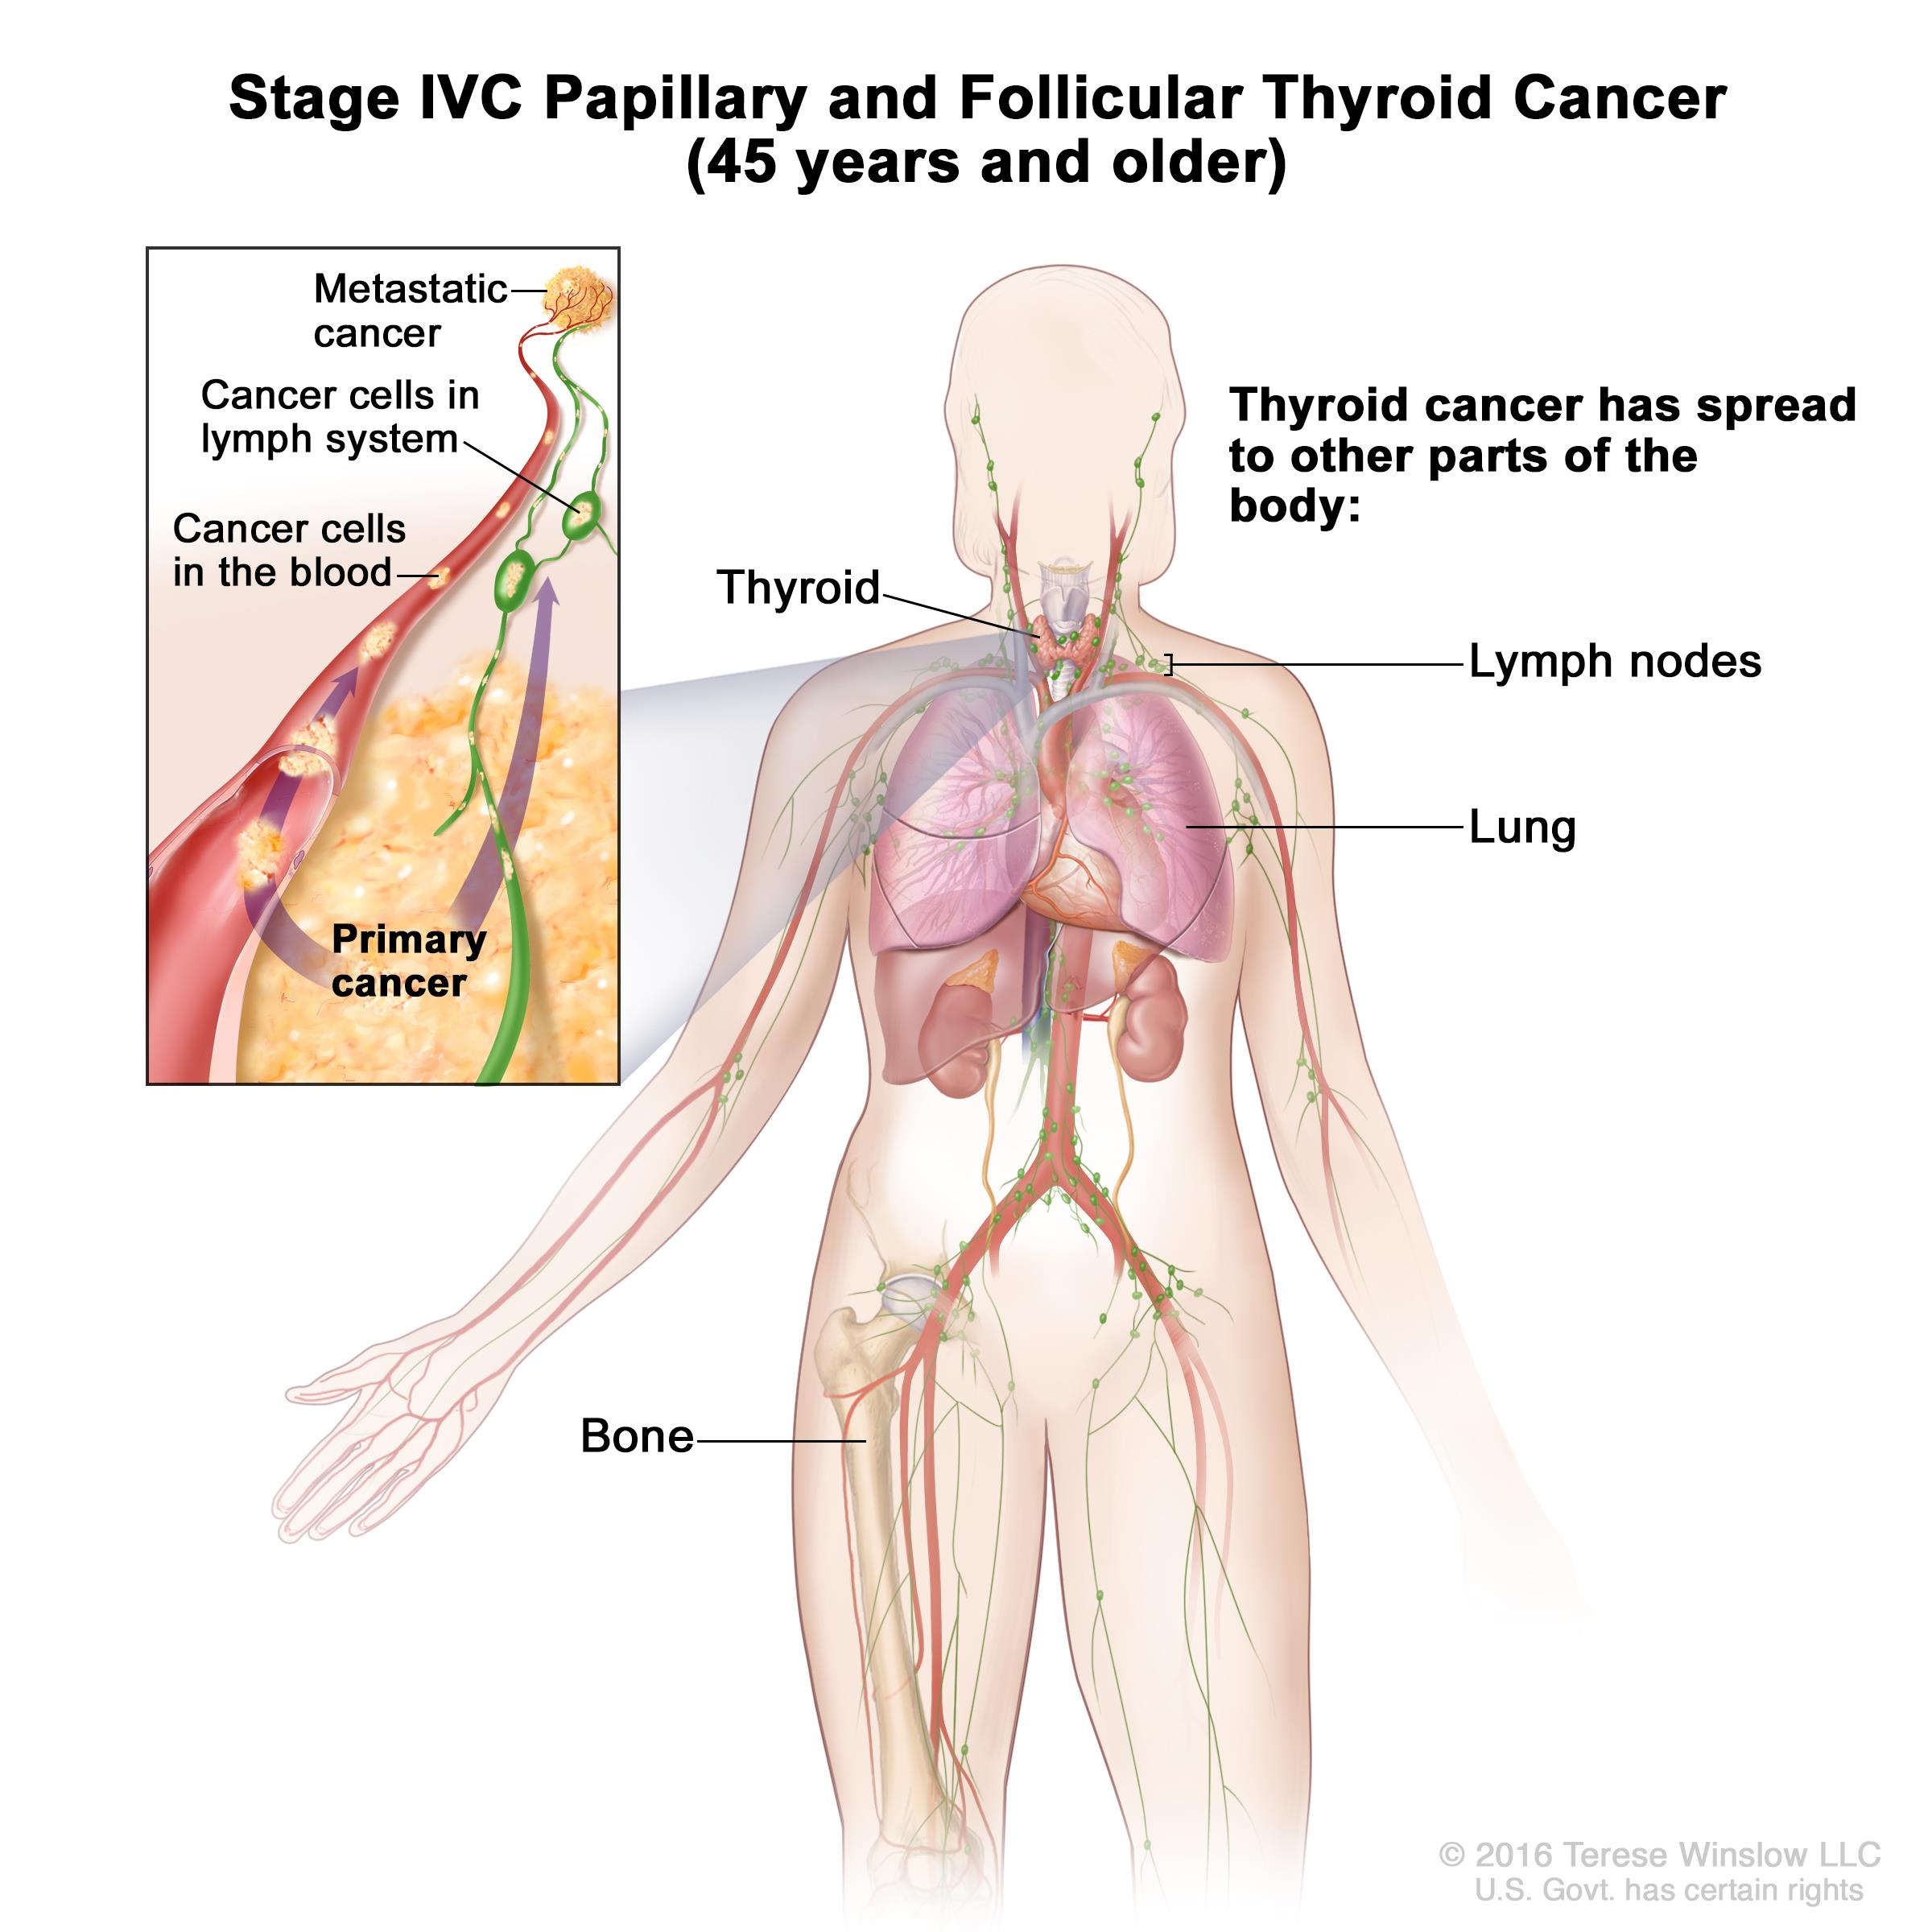 Stage IVC papillary and follicular thyroid cancer in patients 45 years and older; drawing show other parts of the body where thyroid cancer may spread, including the lymph nodes, lung, and bone. An inset shows cancer cells spreading from the thyroid, through the blood and lymph system, to another part of the body where metastatic cancer has formed.